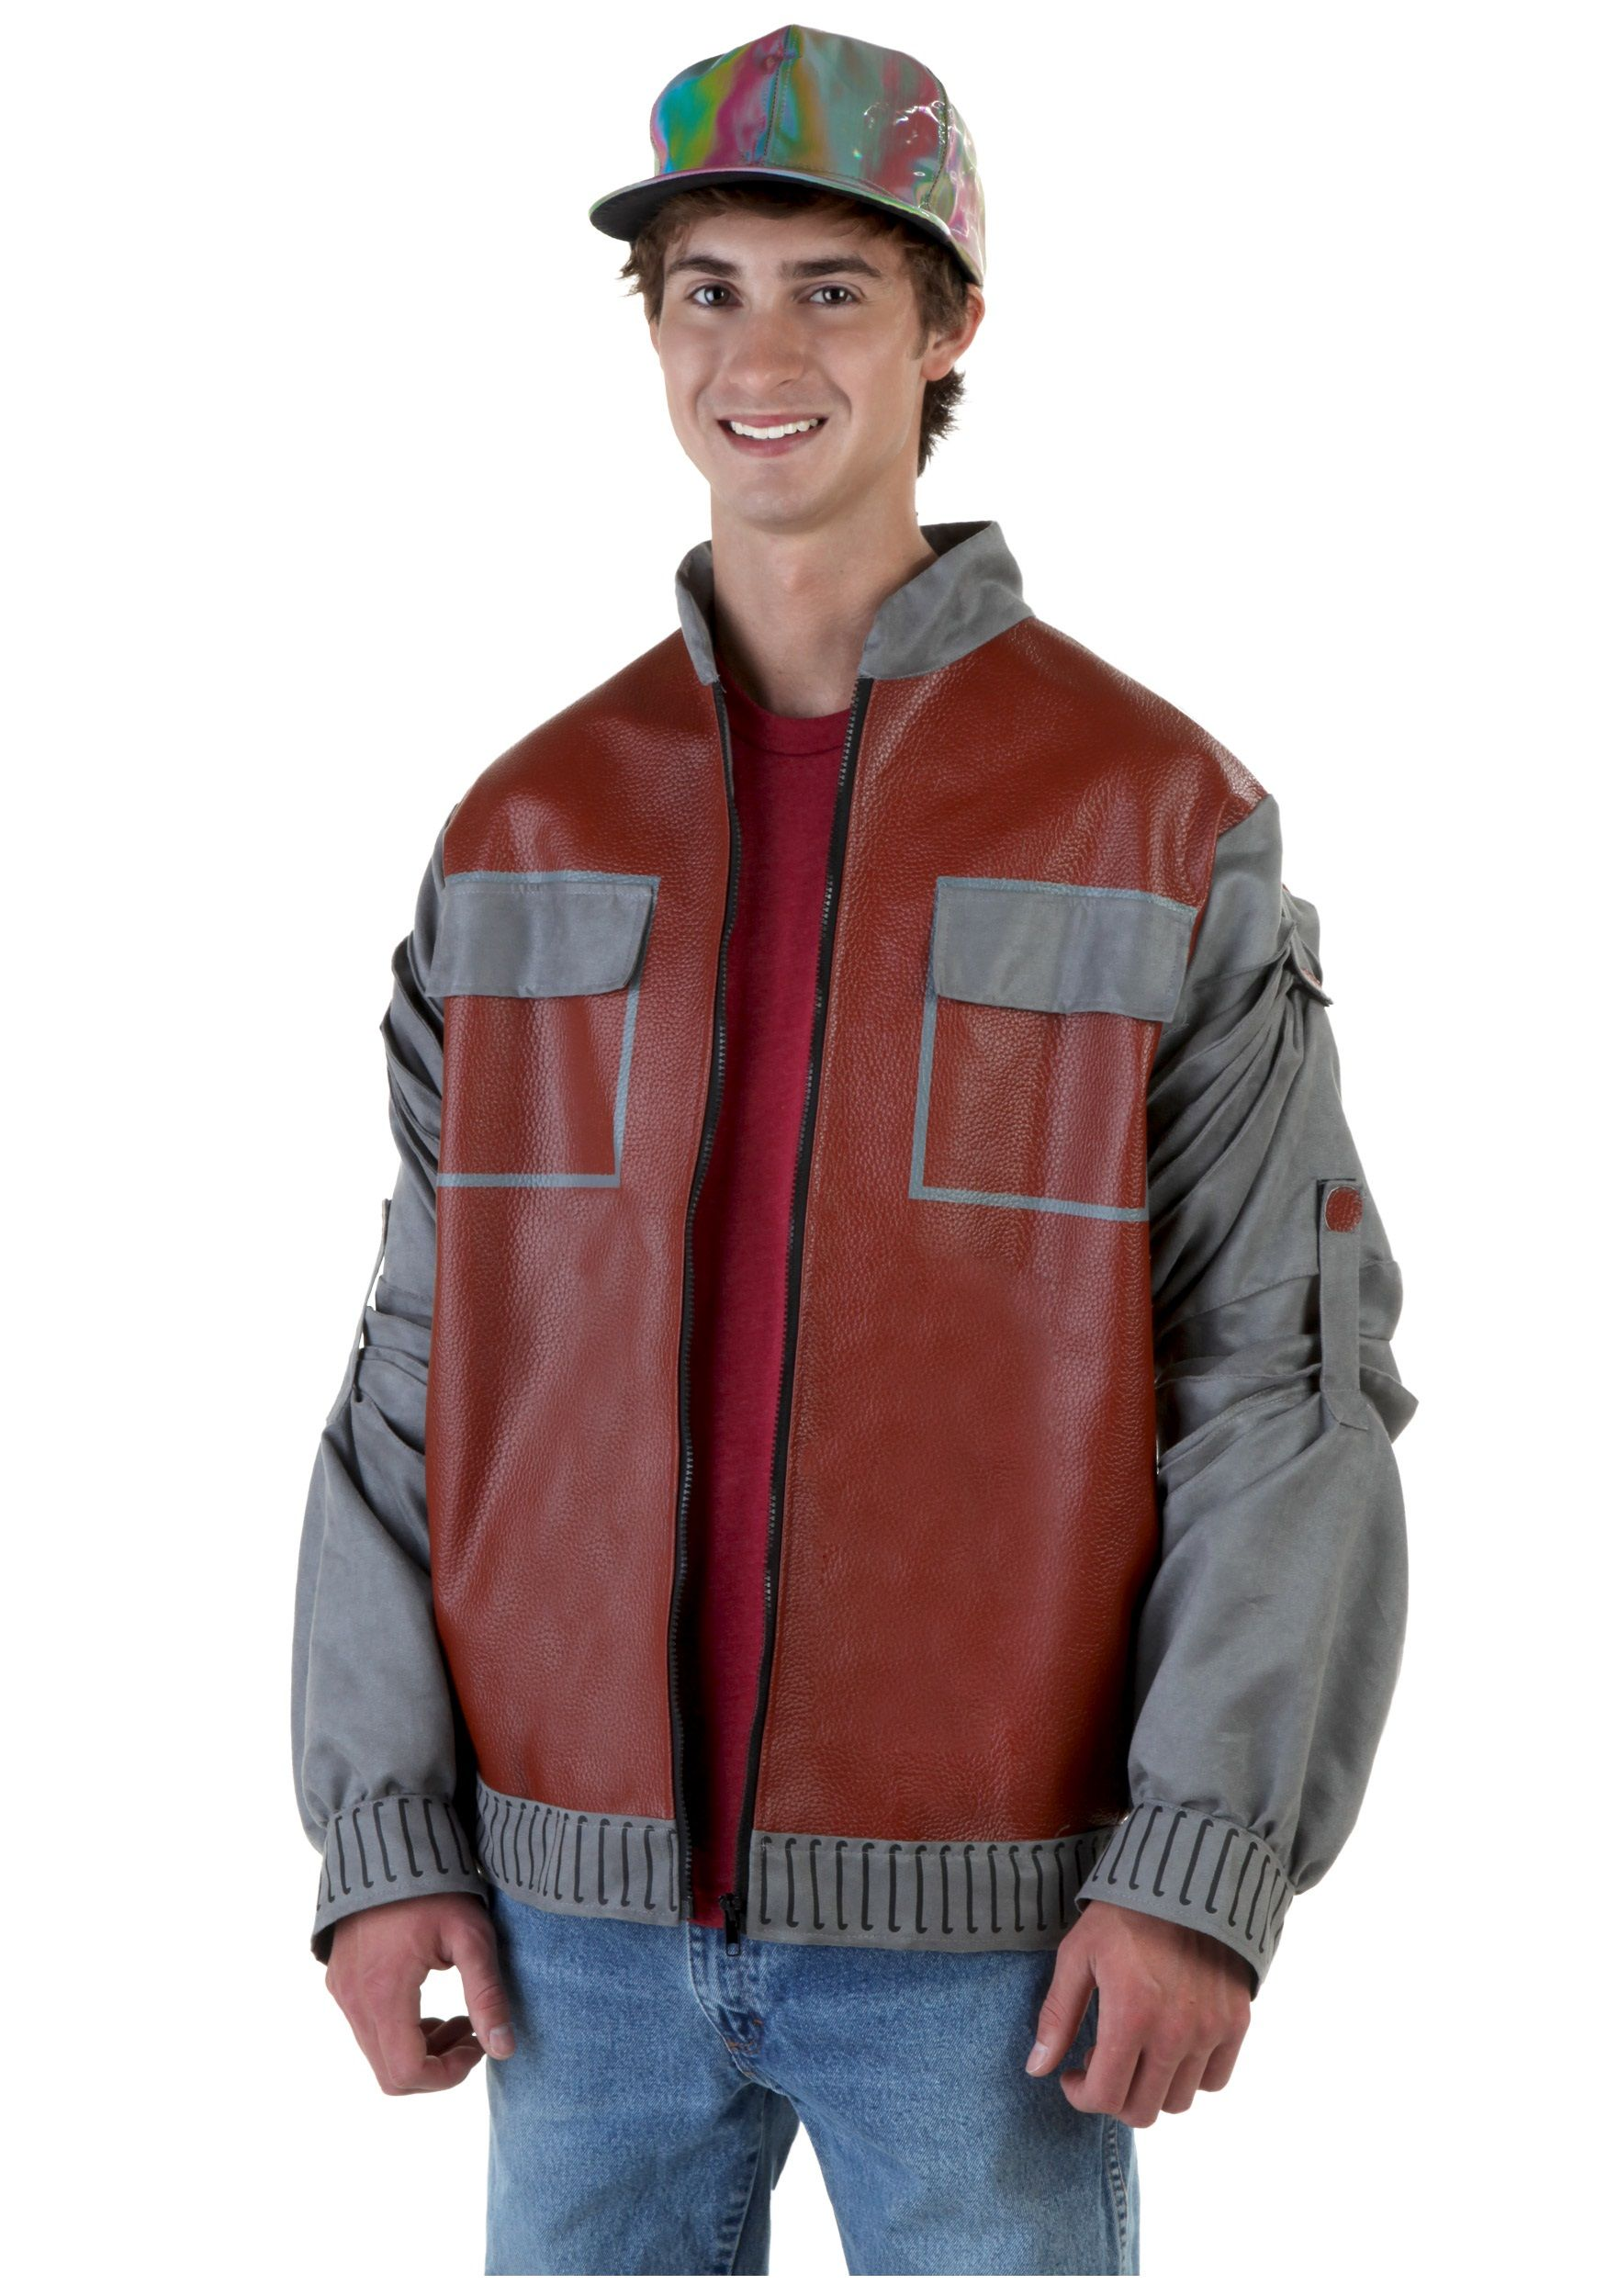 Back To The Future Marty Mcfly Jacket For Men Costume Marty Mcfly Jacket Stylish Jackets Doc Brown Costume [ 2500 x 1750 Pixel ]